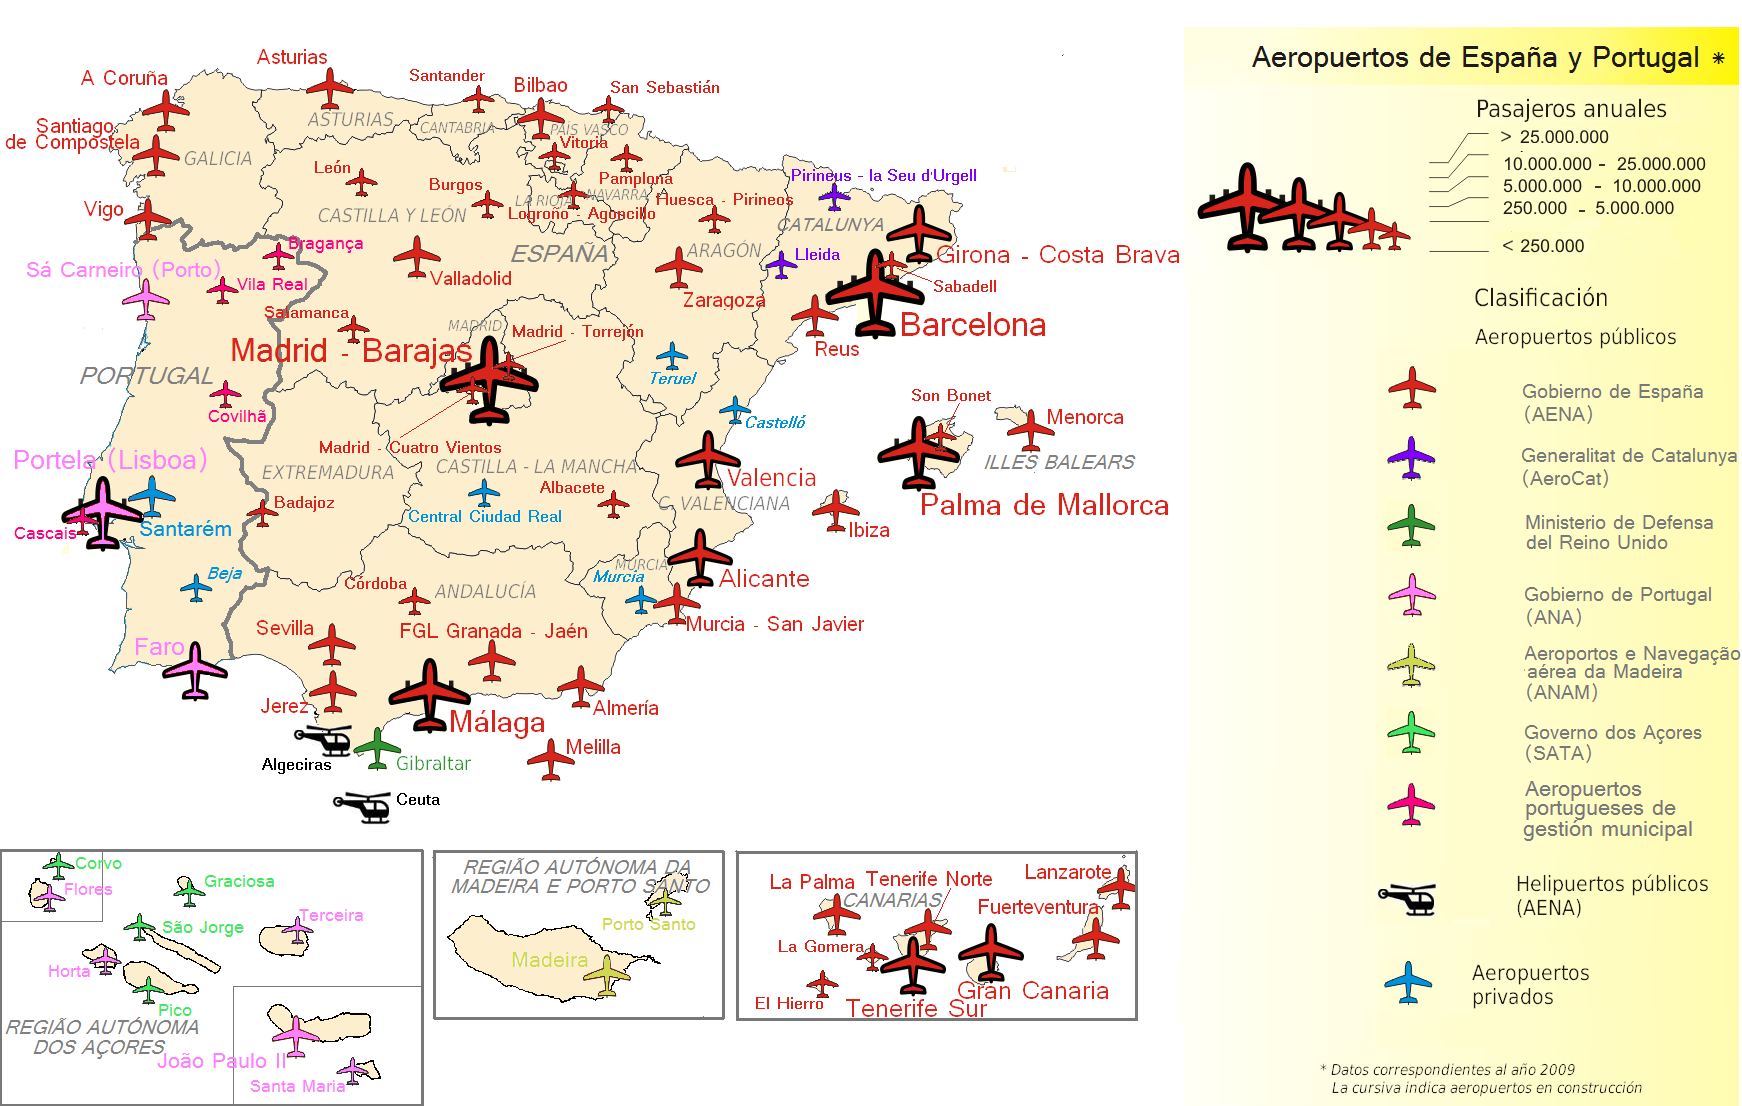 FileAirports Of Spain And Portugalpng Wikimedia Commons - Portugal map with airports